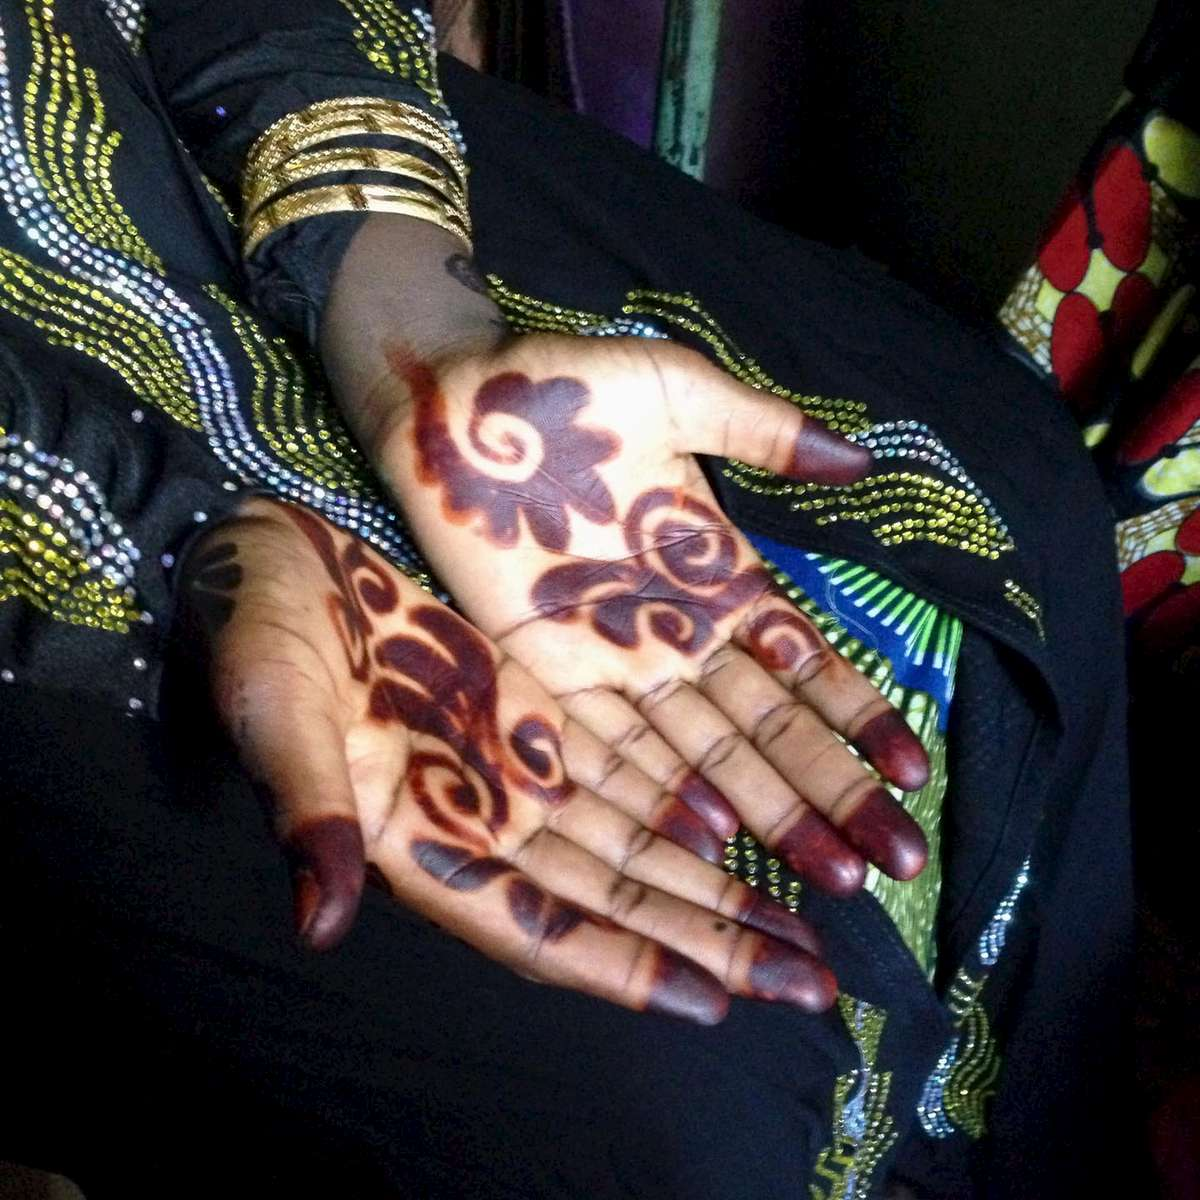 Henna\'ed hands before a wedding. Northern Nigeria. November 2014.